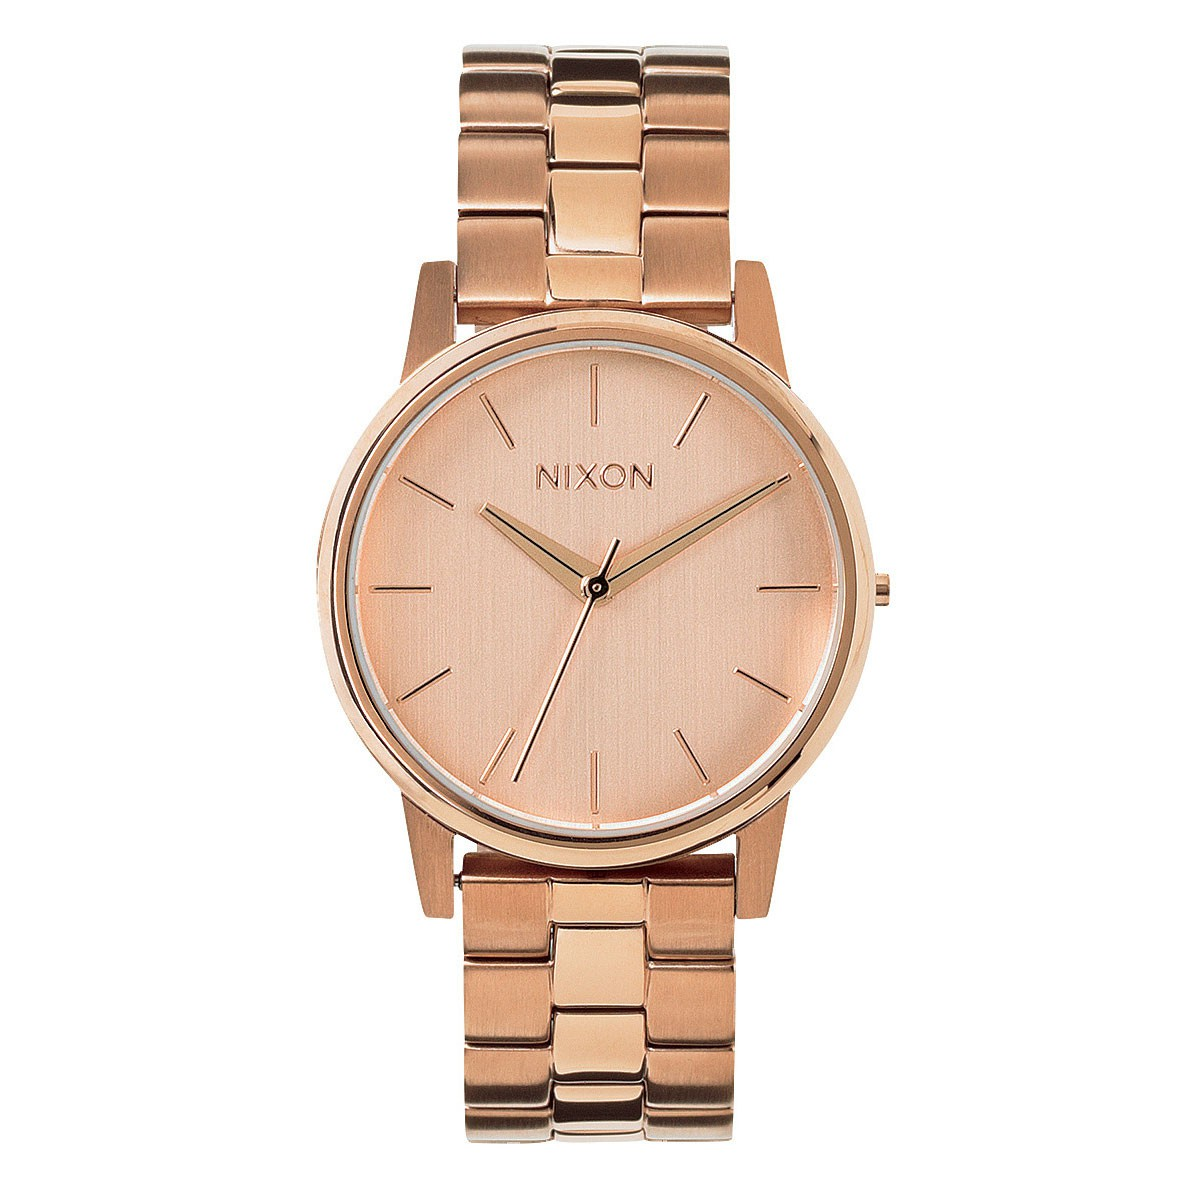 Hodinky Nixon Small Kensington all rose gold